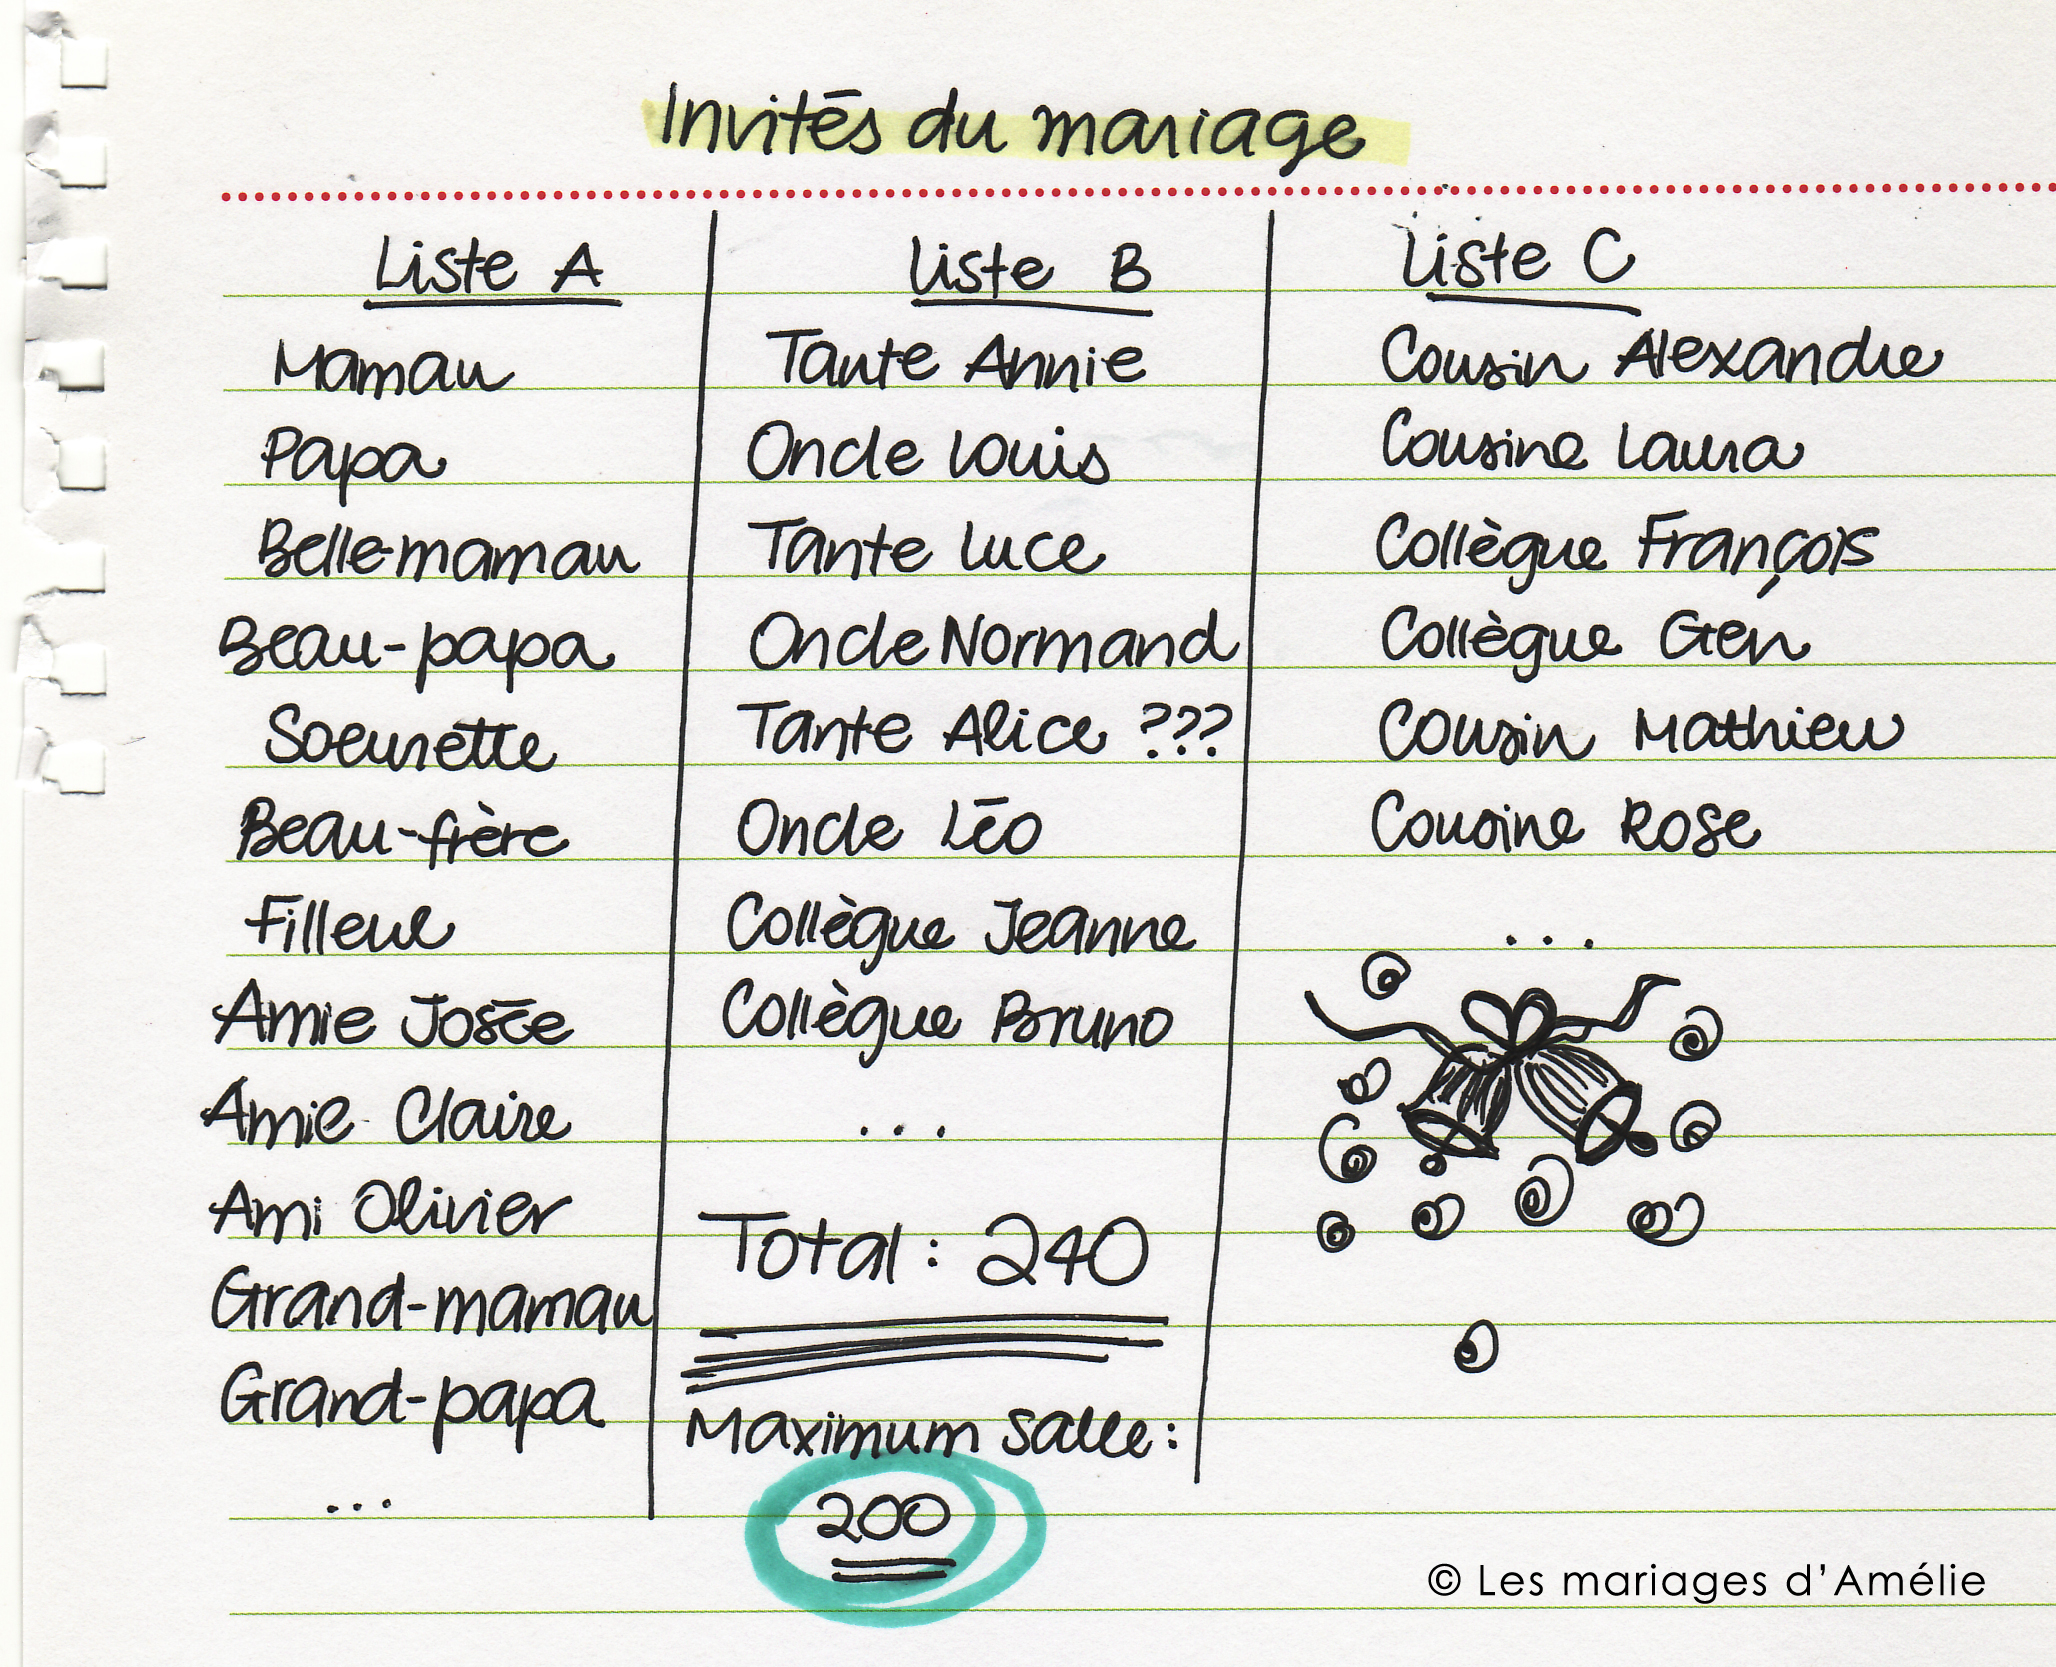 Liste planification mariage